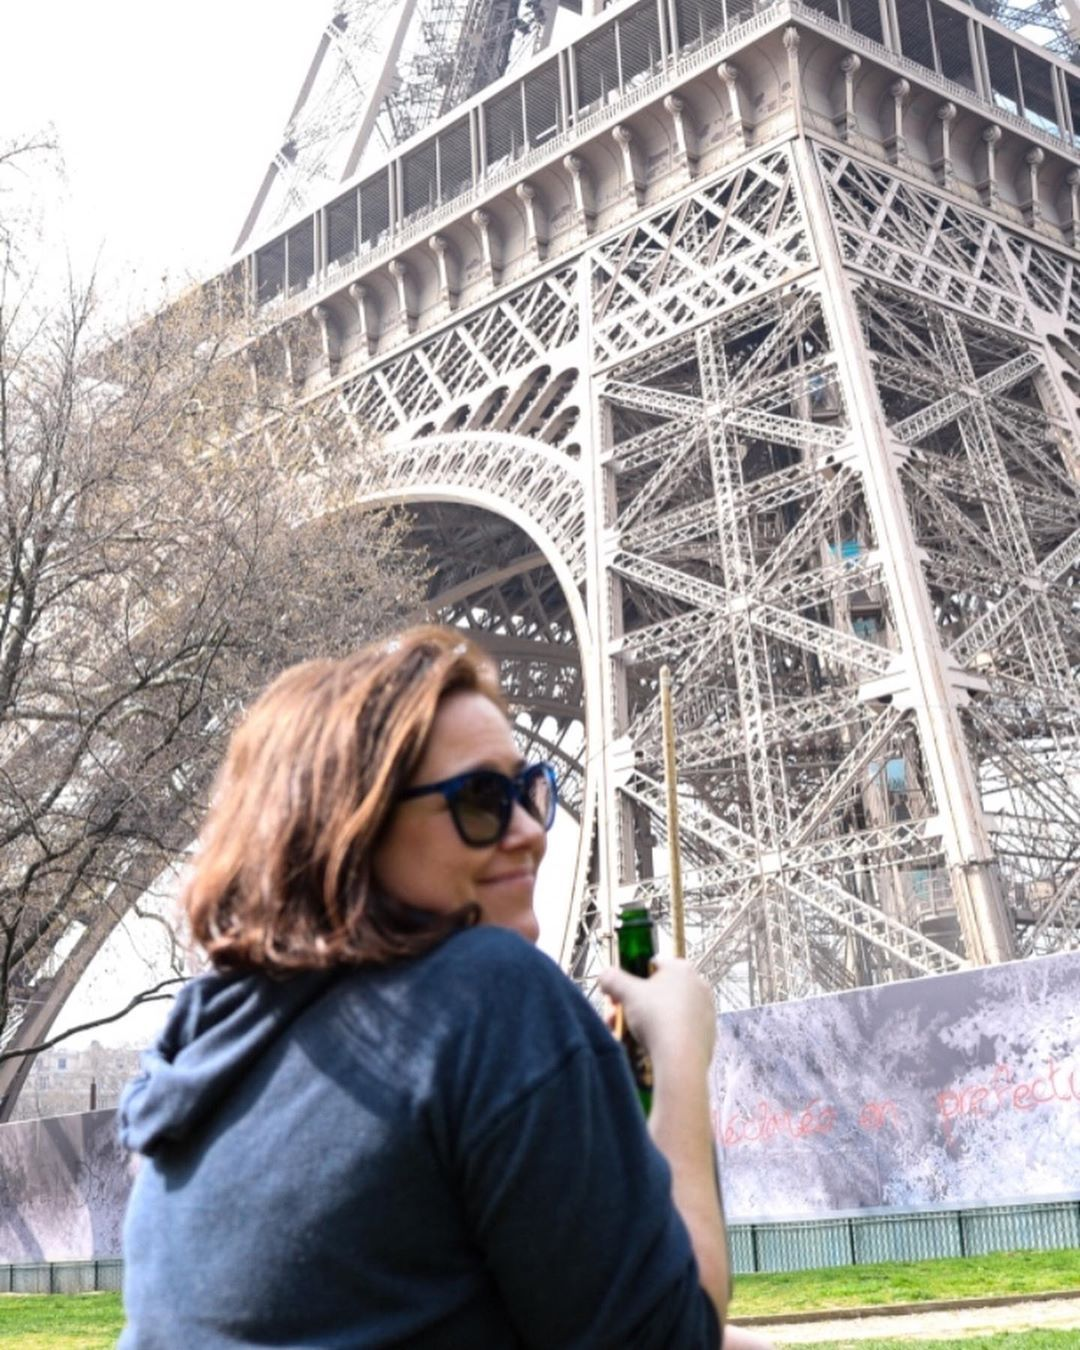 Our Vegan Picnic At The Eiffel Tower For B S 30th Birthday Included Chanpagne A Fresh Baguette Most In Paris Are Accid Paris Vegan Vegan Picnic Vegan Cheese